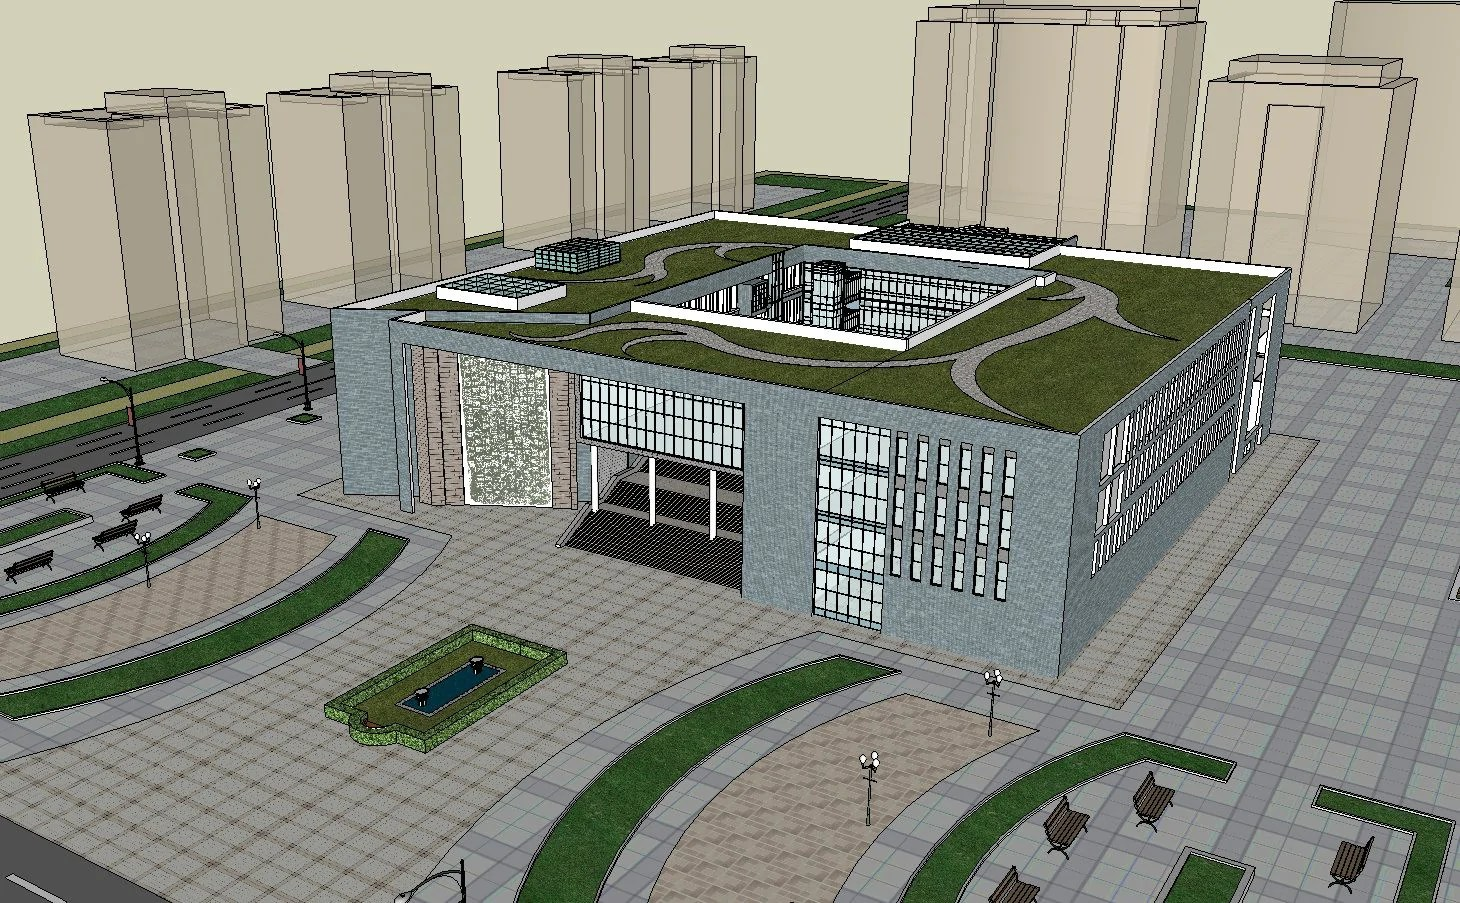 Download 15 Library Sketchup 3D Models(*.skp file format).